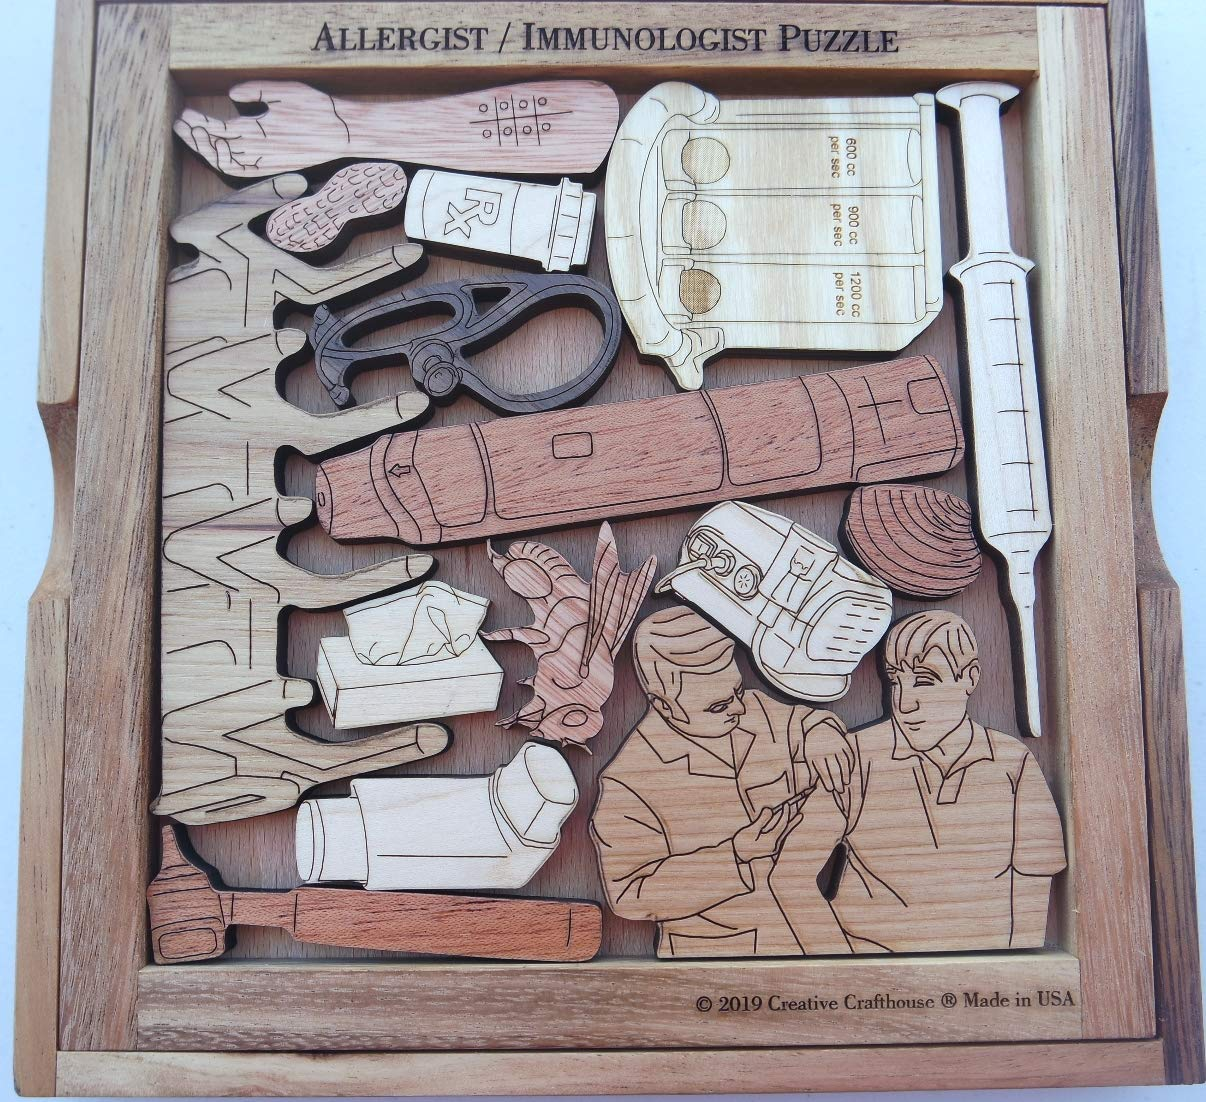 The Allergist and Immunologist Puzzle